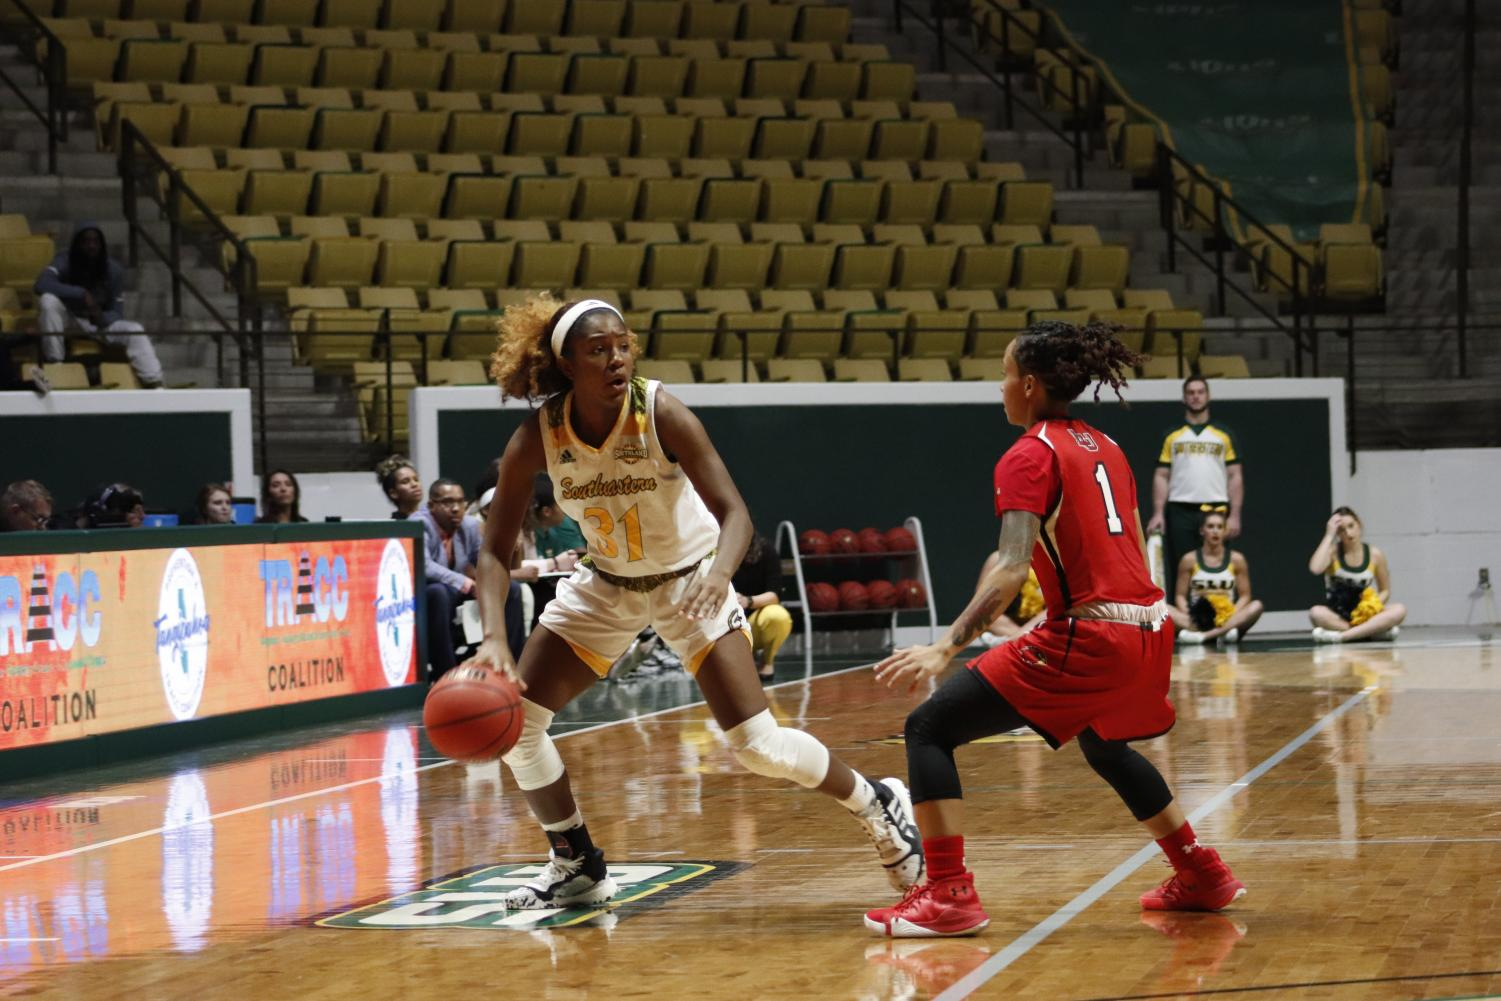 Freshman guard Alexius Horne brings the ball down court against Lamar University. Horne finished with 13 points, one rebound and one assist.